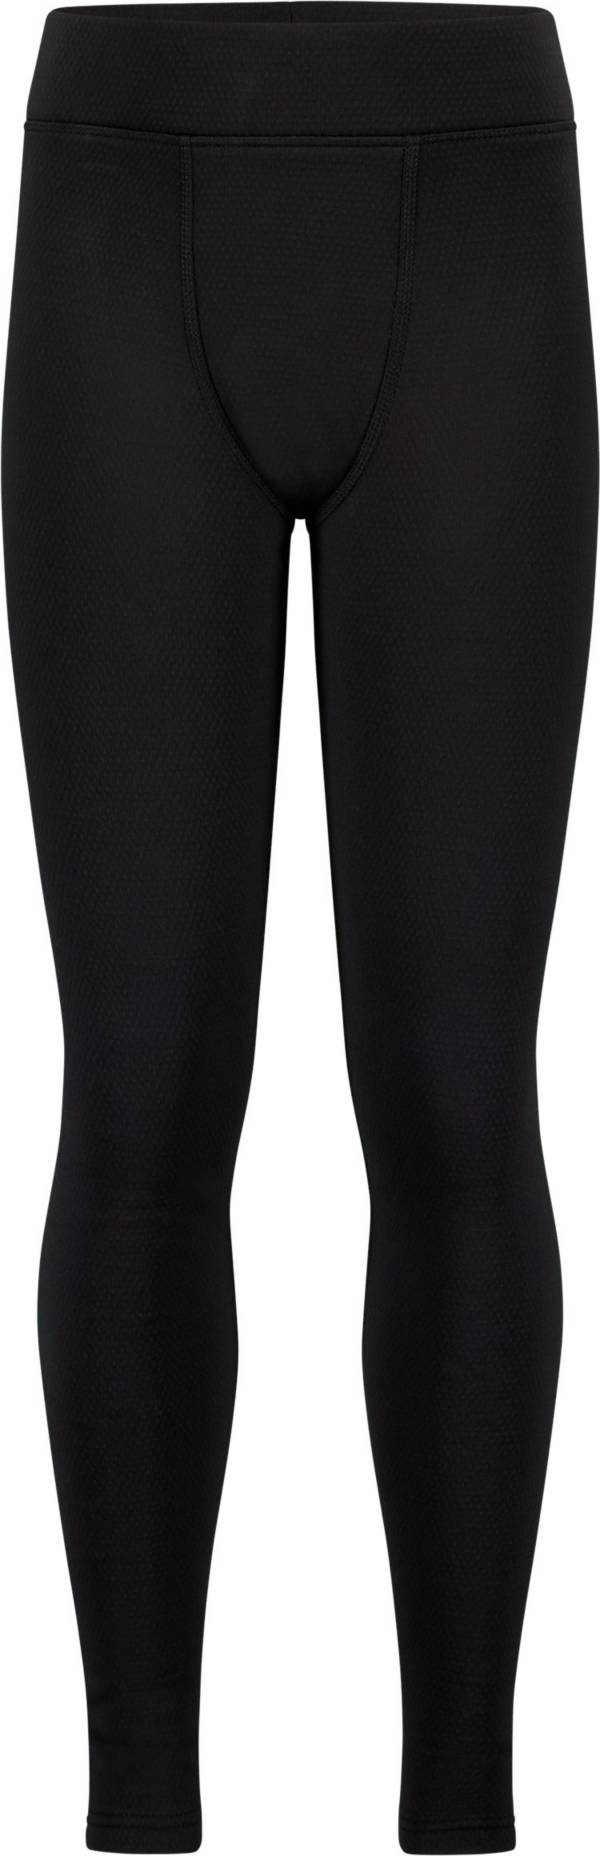 Under Armour Youth 2.0 Baselayer Leggings product image